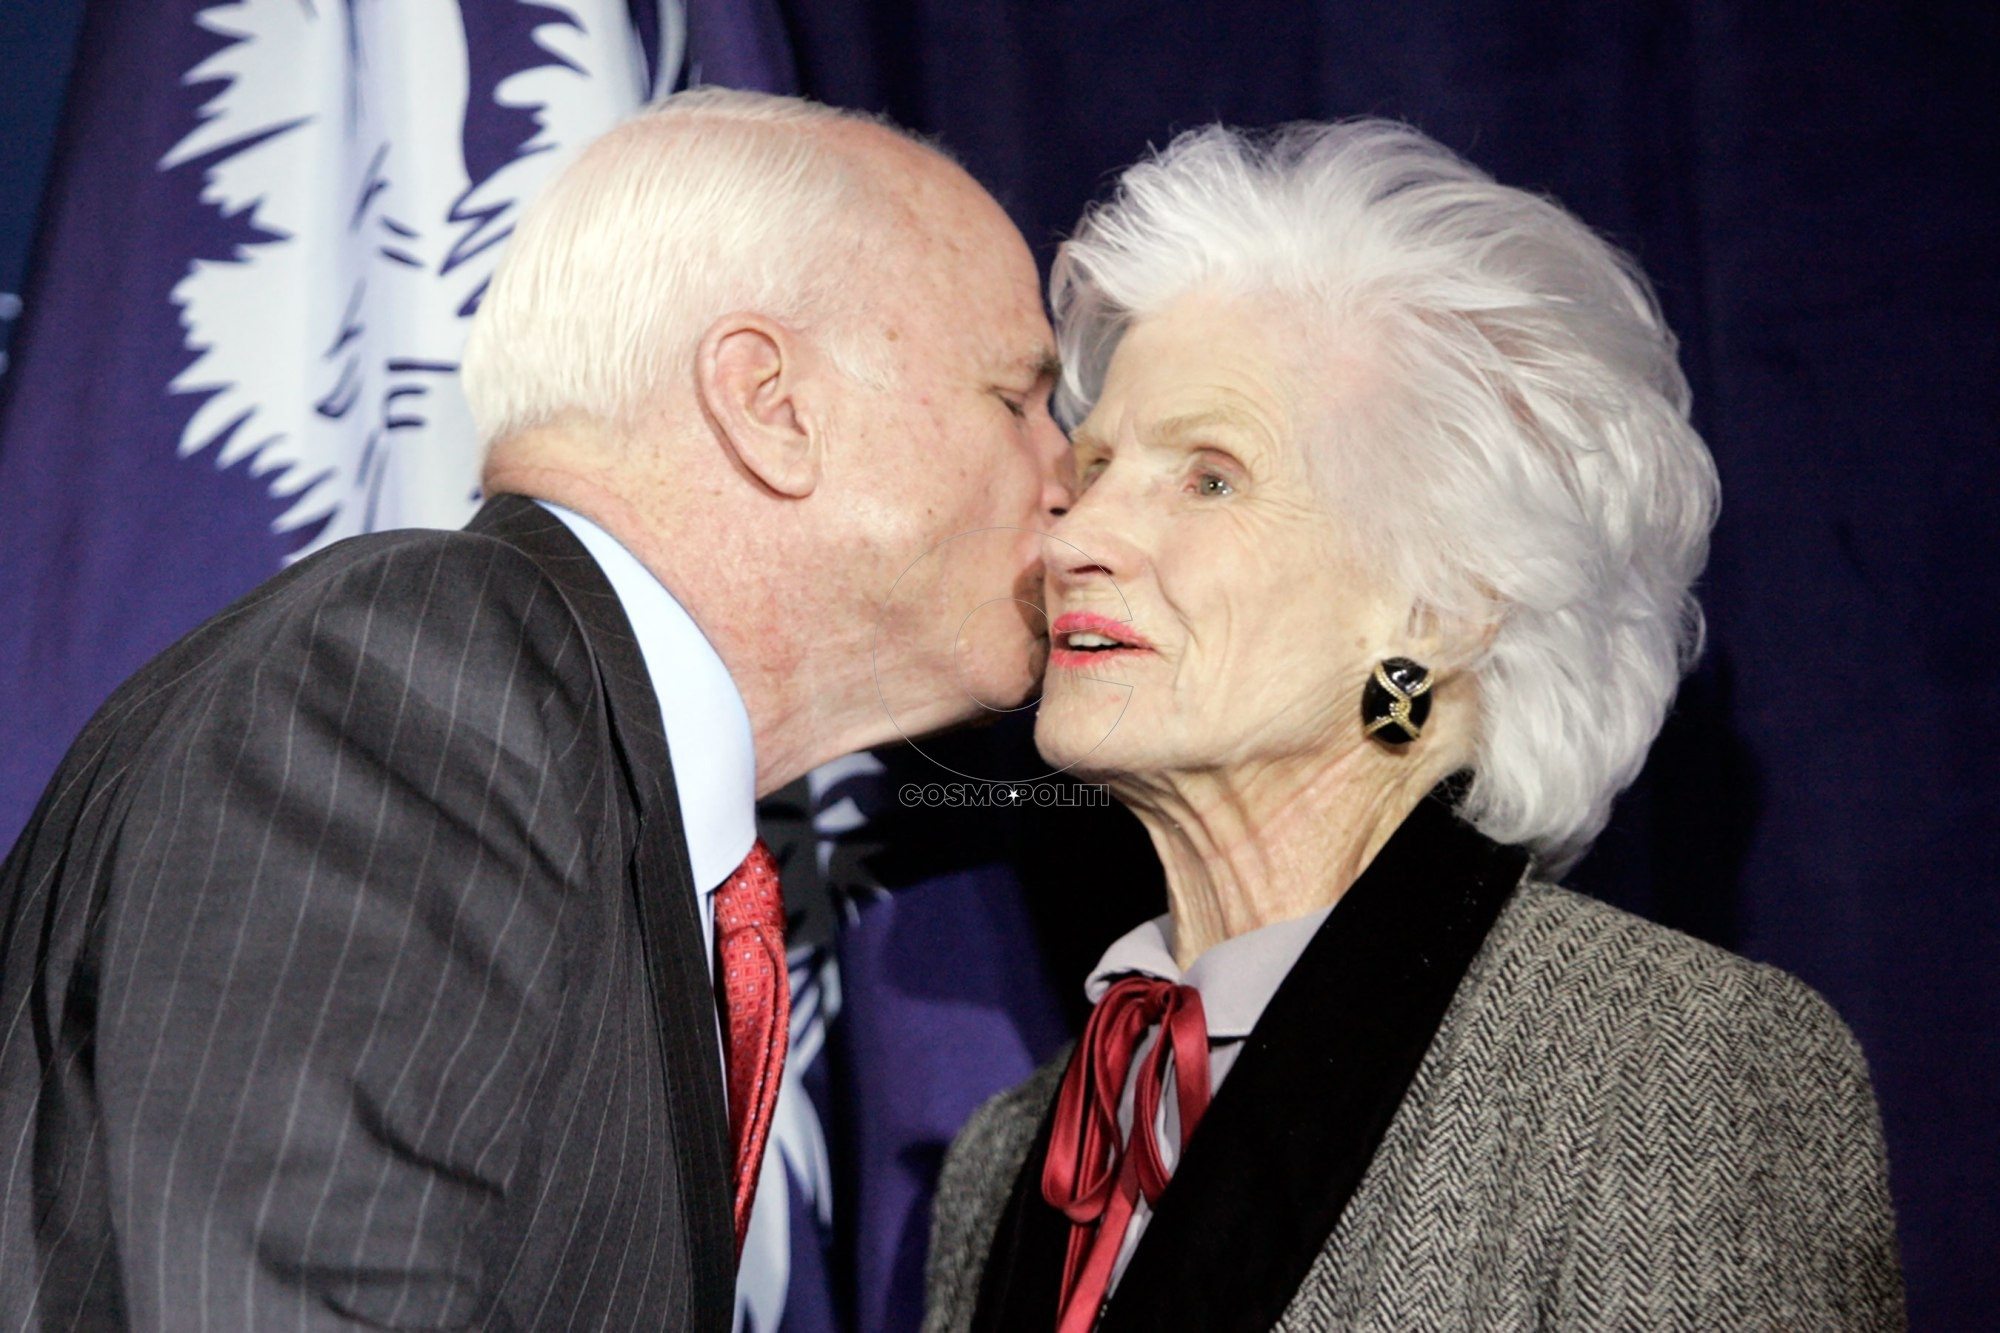 Arizona Sen. John McCain thanks supporters, including his mother, Roberta McCain, gathered at The Citadel after his South Carolina primary win in Charleston, South Carolina, Saturday, January 19, 2008. (Photo by Erik Campos/The State/MCT via Getty Images)